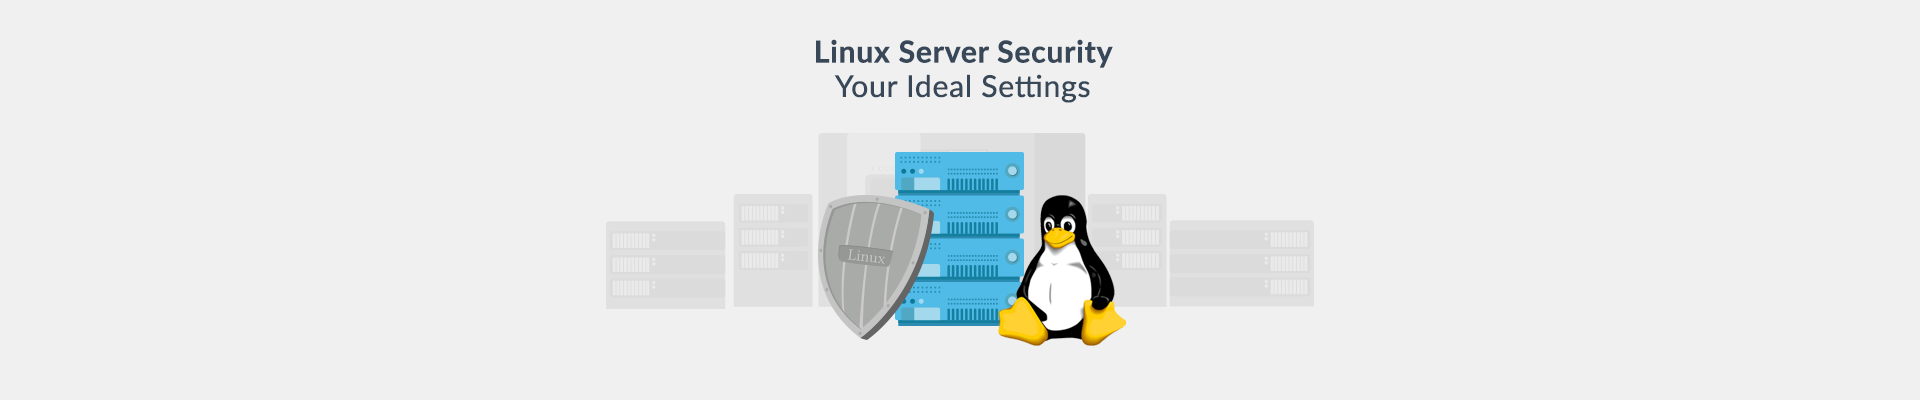 Linux Server Security